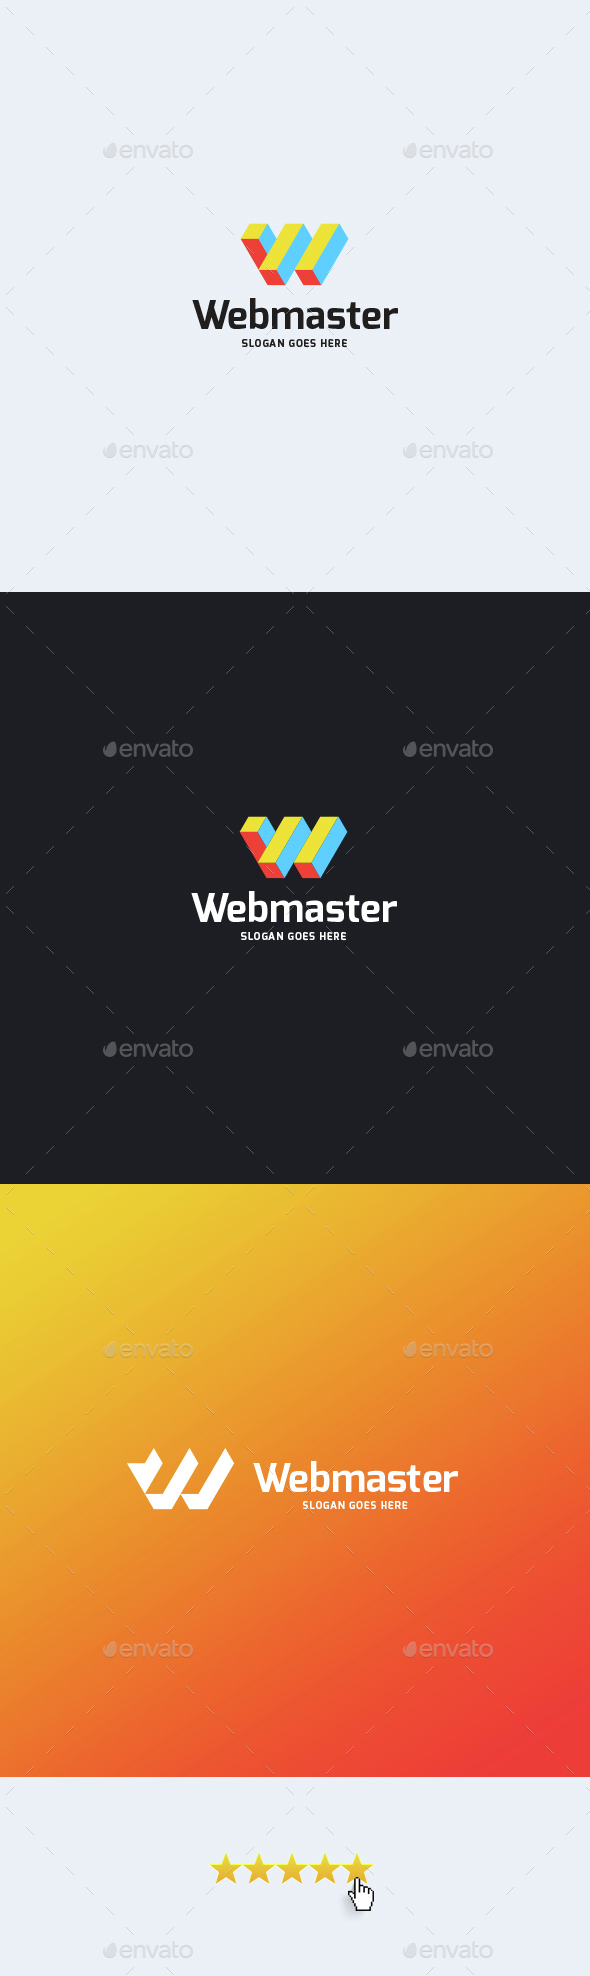 Webmaster • Letter W Logo Template - Letters Logo Templates